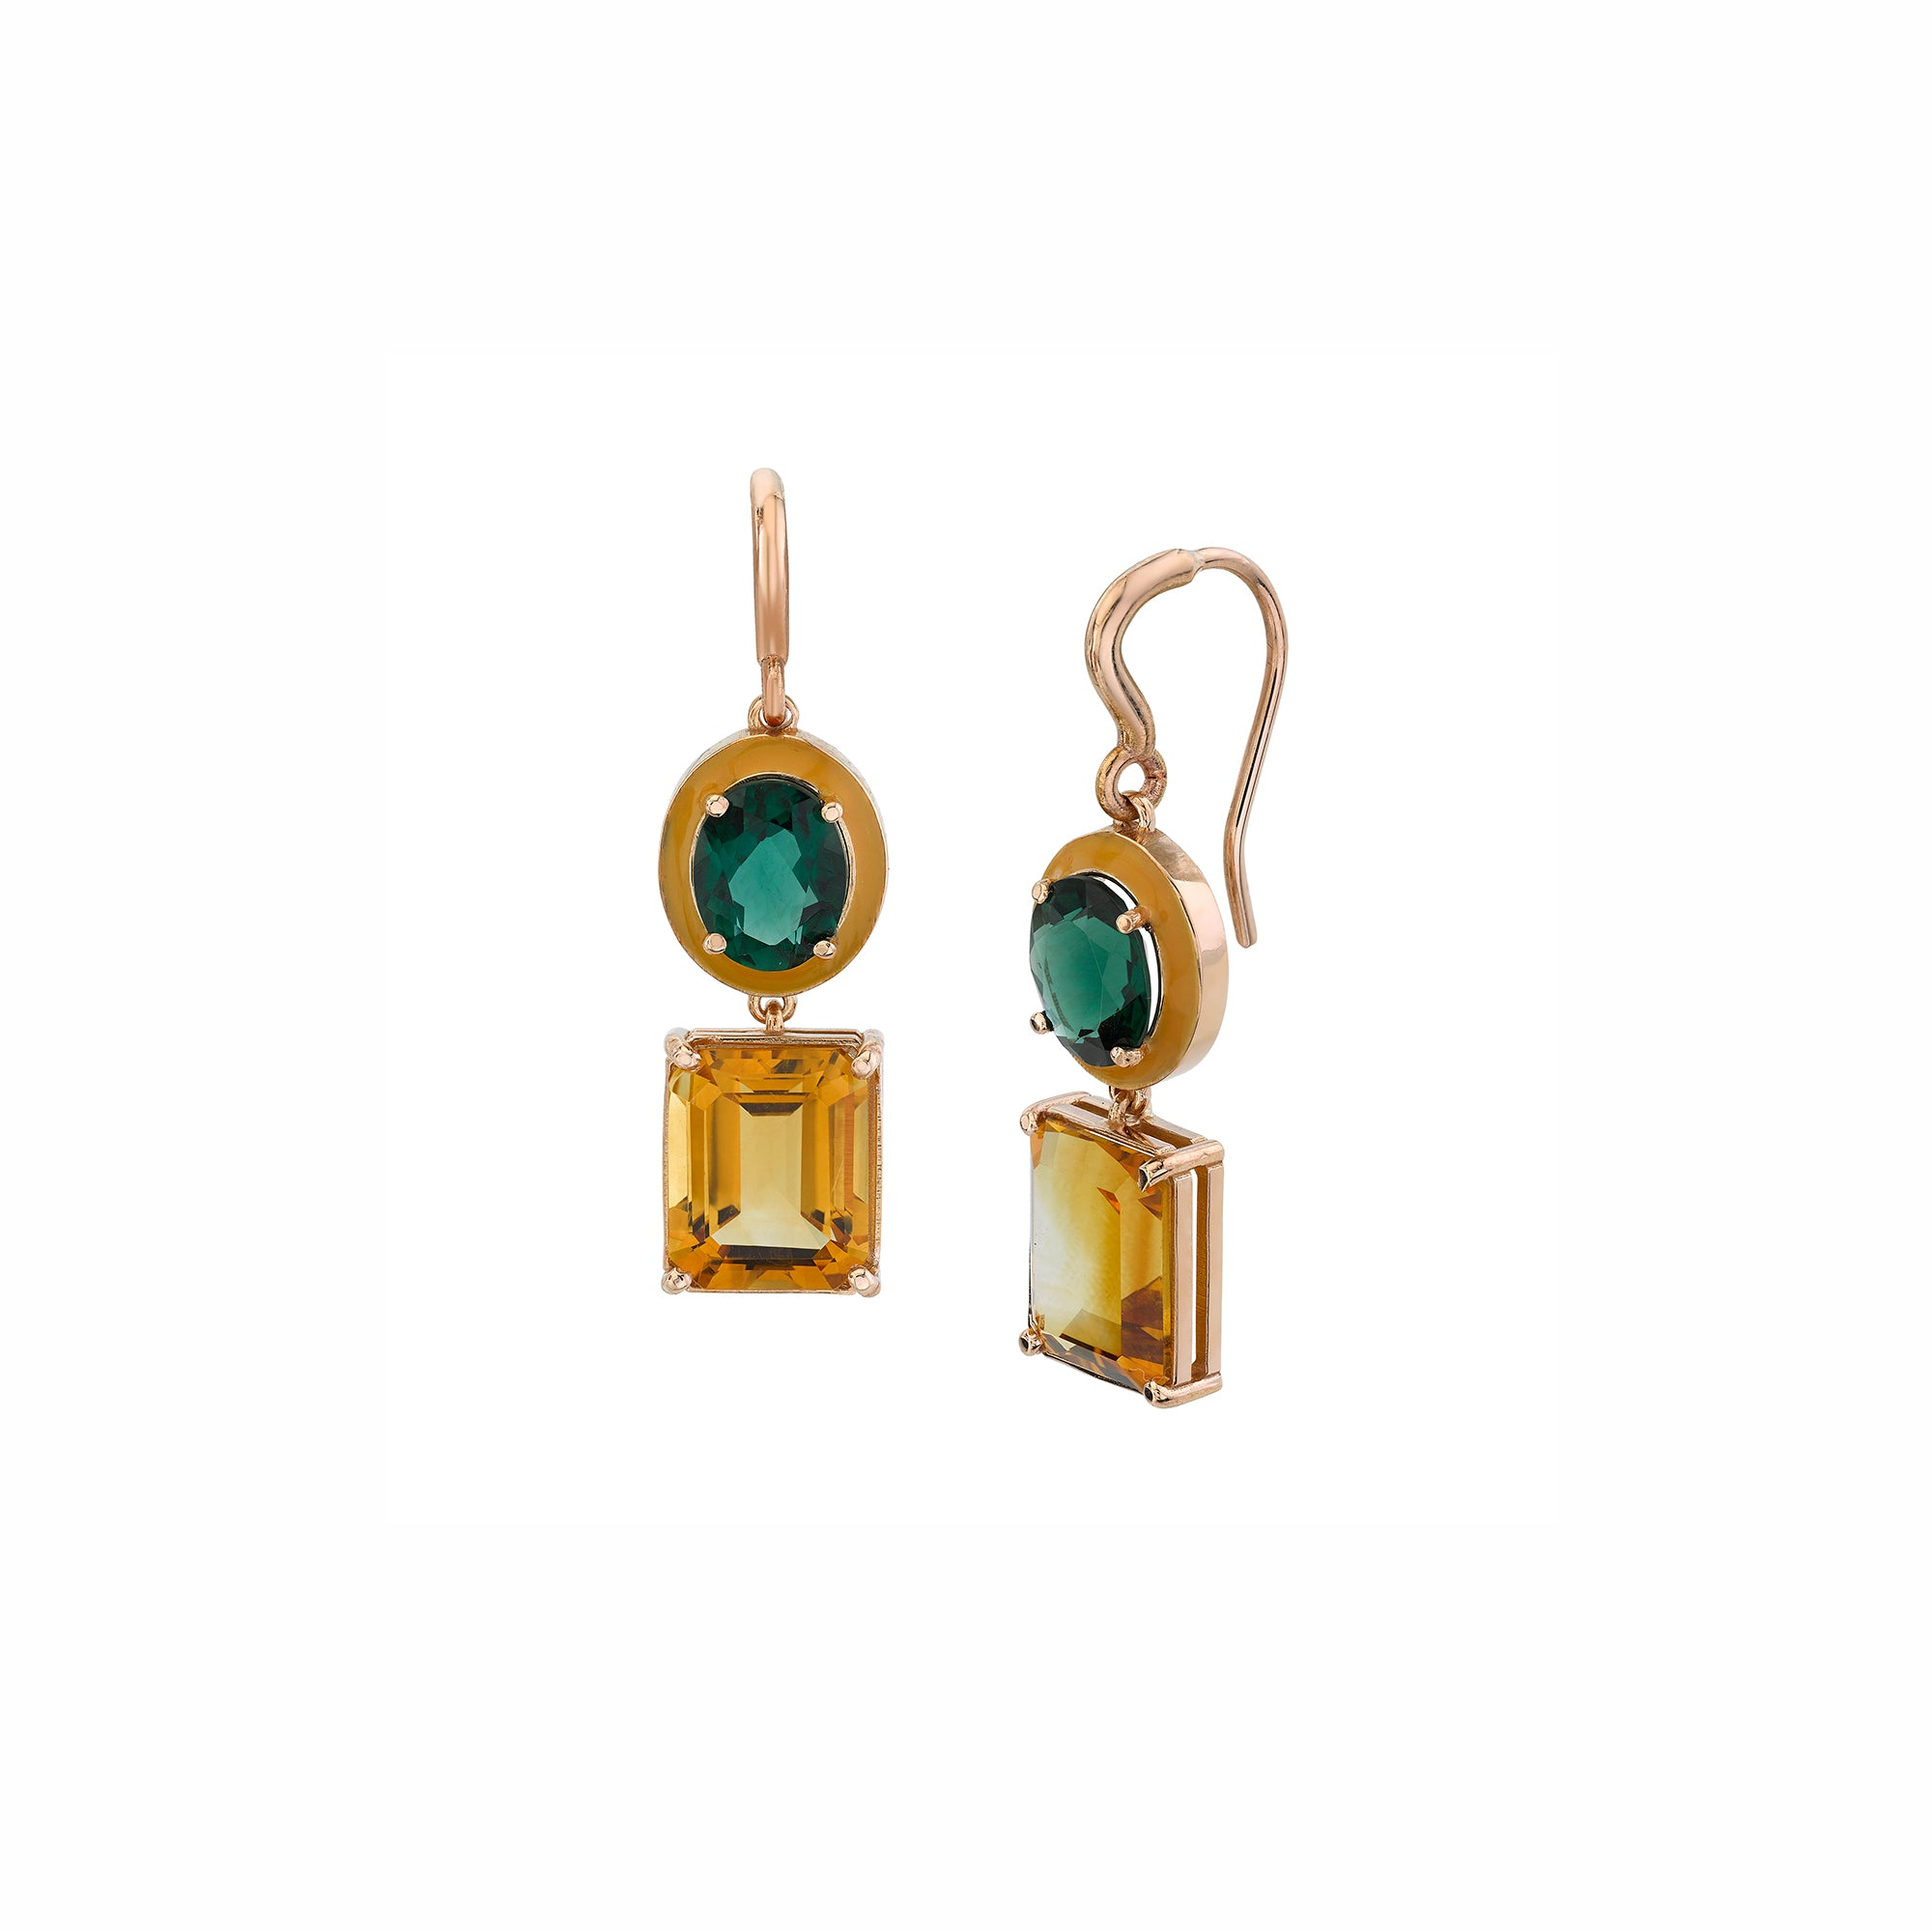 Small Gaga Enamel Gemstone Earrings - Green Topaz/Citrine - Sarah Hendler - Earrings | Broken English Jewelry